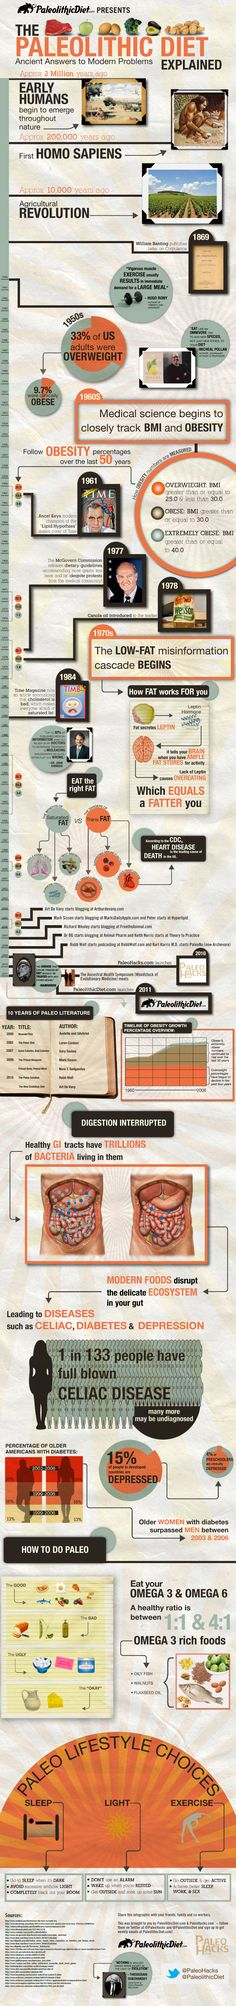 This infographic explains the why and how of the Paleo Diet and provides context for its place in nutrition.